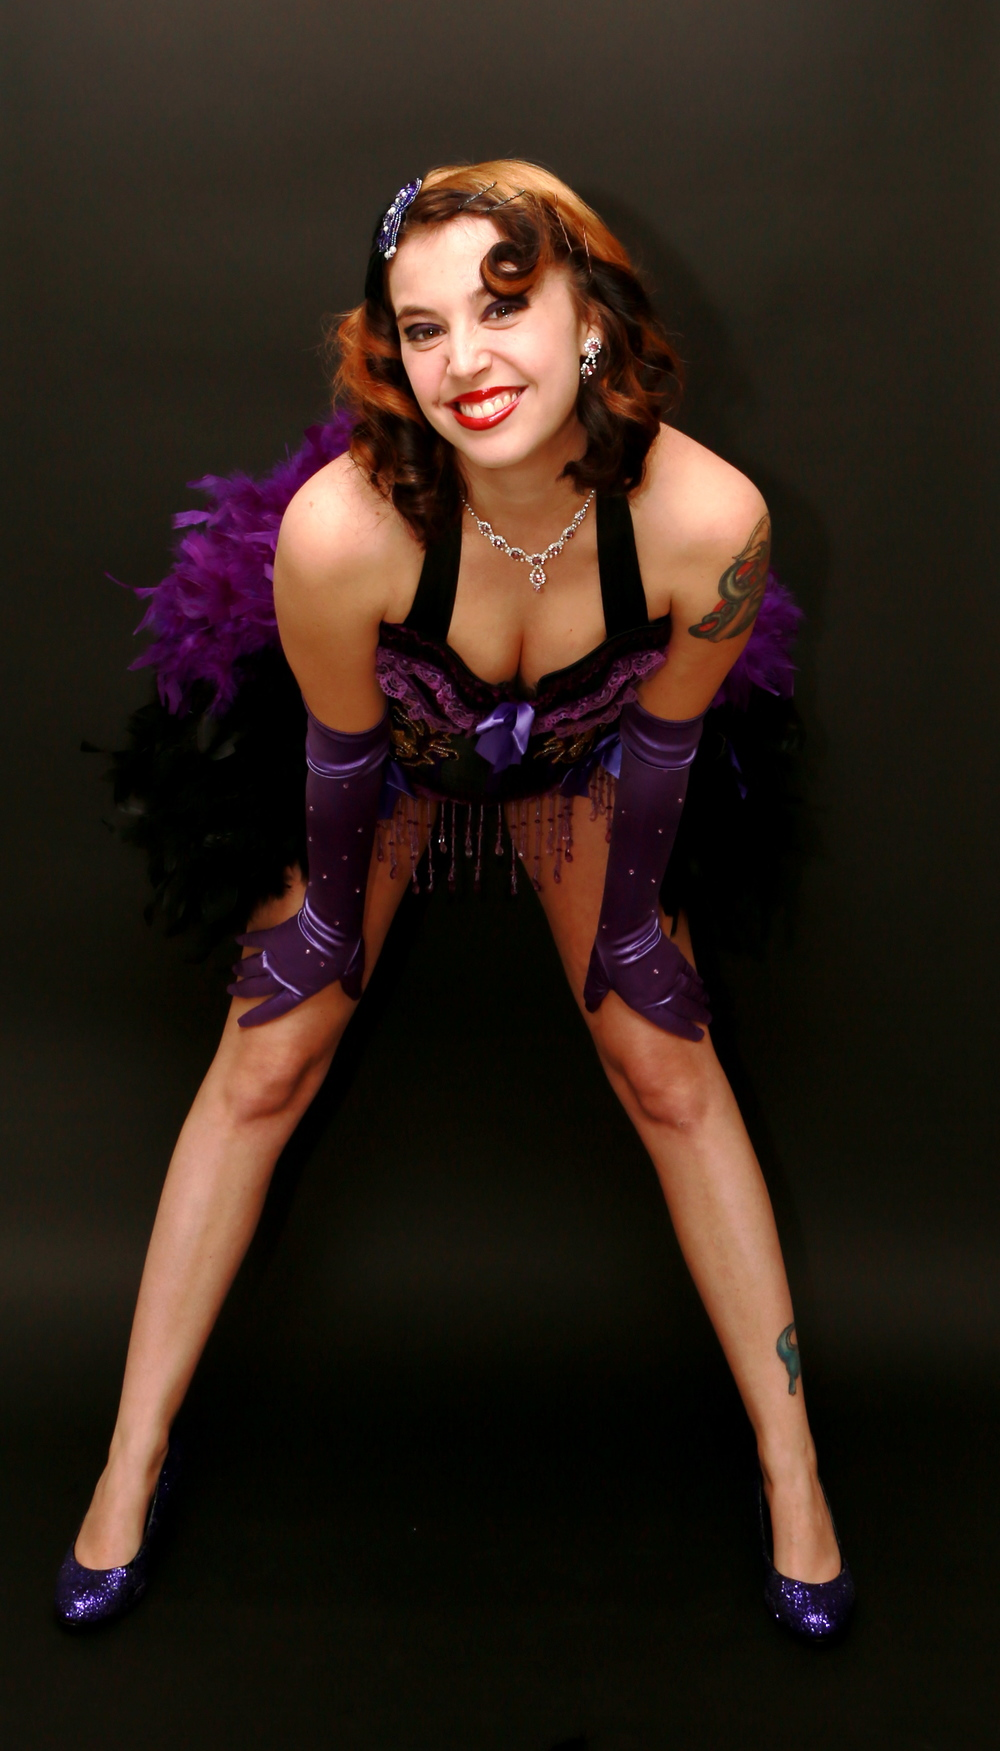 Lily Stitches - The Host and Veteran Performer of Ink & Paint Club Burlesque. Photo by Speckle Photo